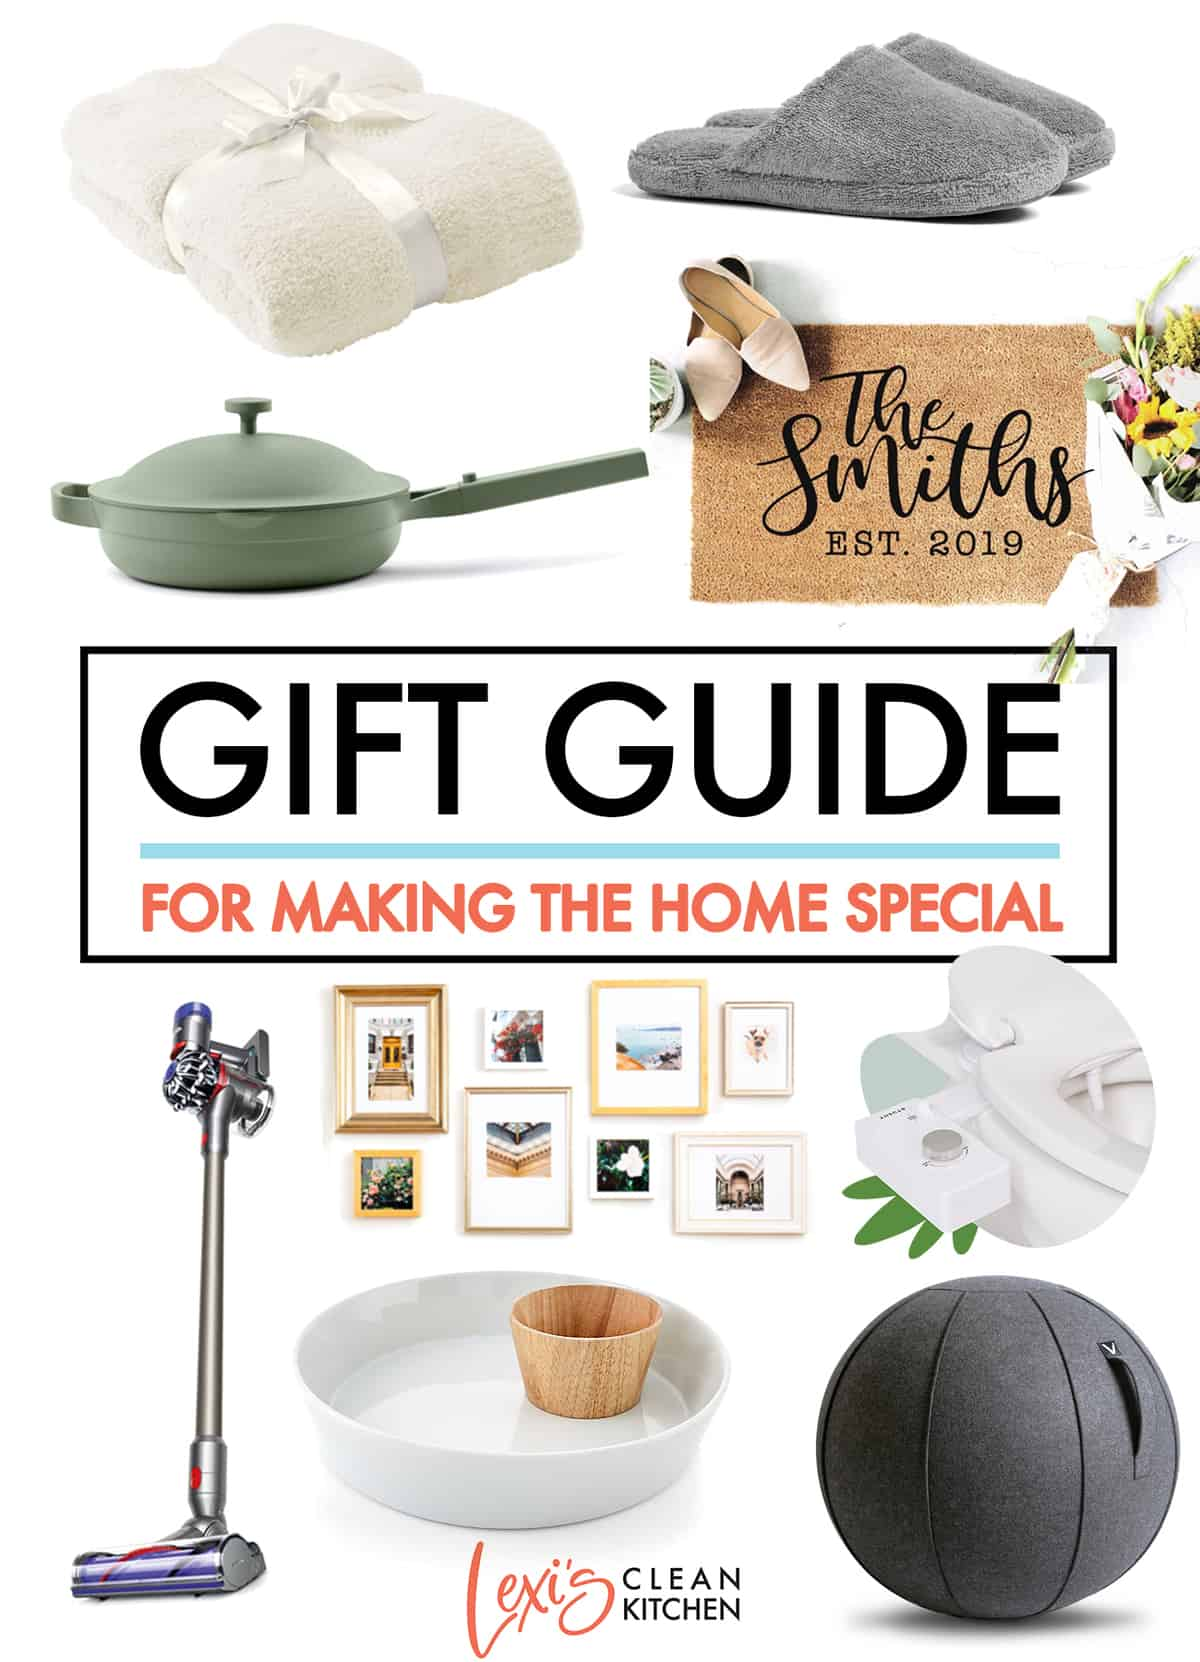 2021 Holiday Gift Guide for the Home, New Homeowner